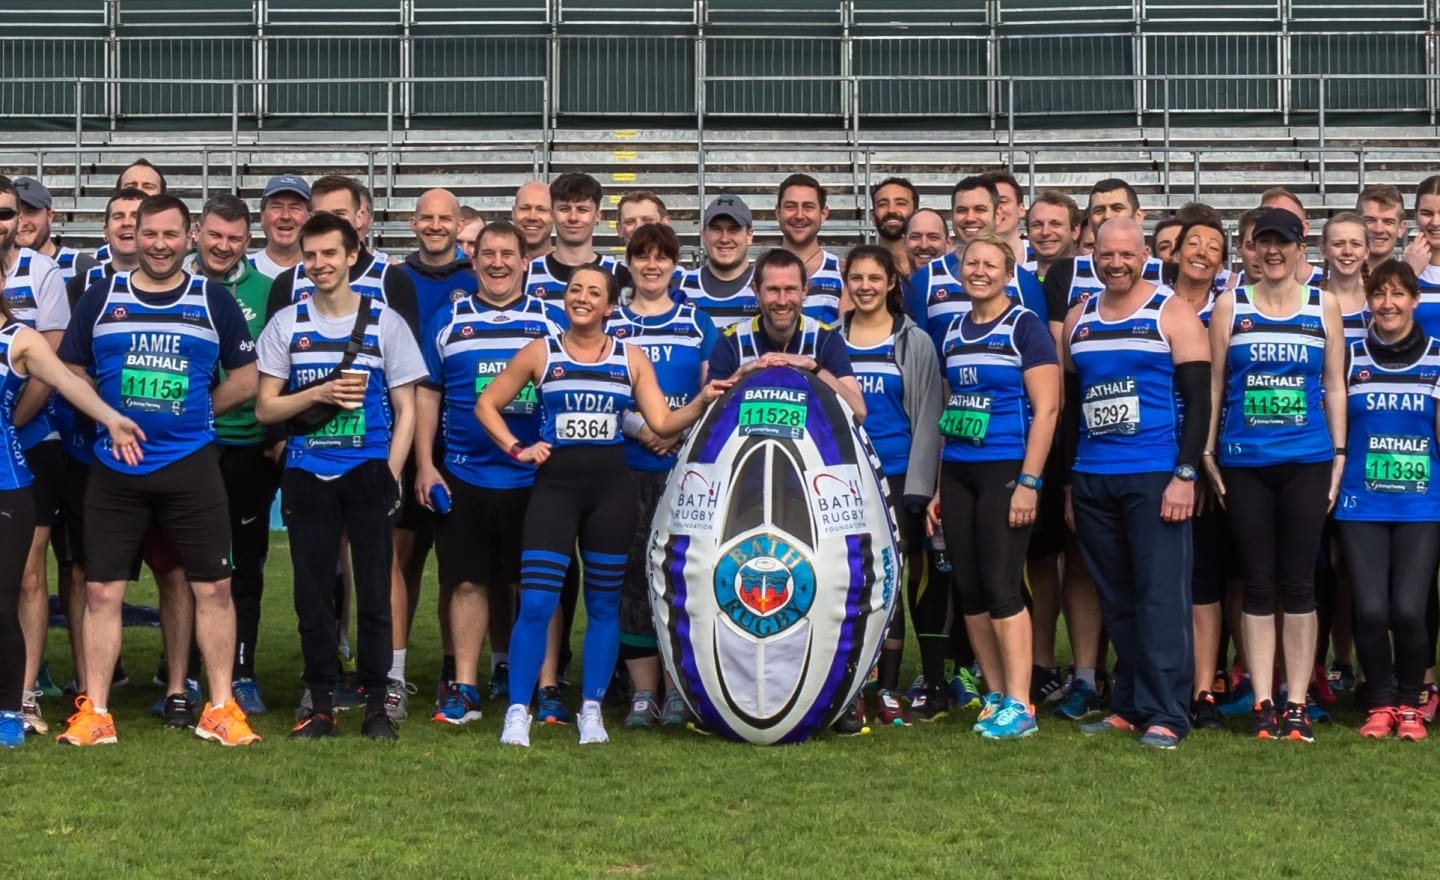 Members of Bath Rugby Foundations Bath Half team 2019